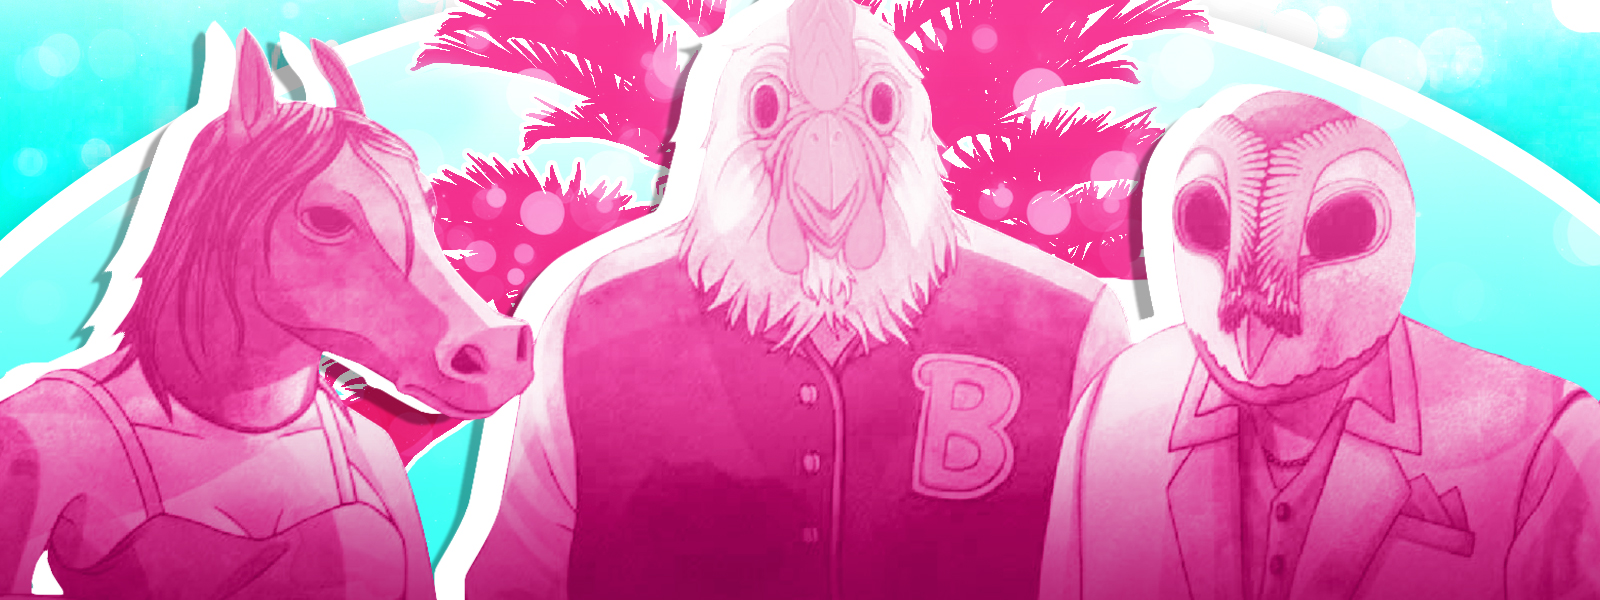 Fans Invited to Be Part of Hotline Miami Trailer